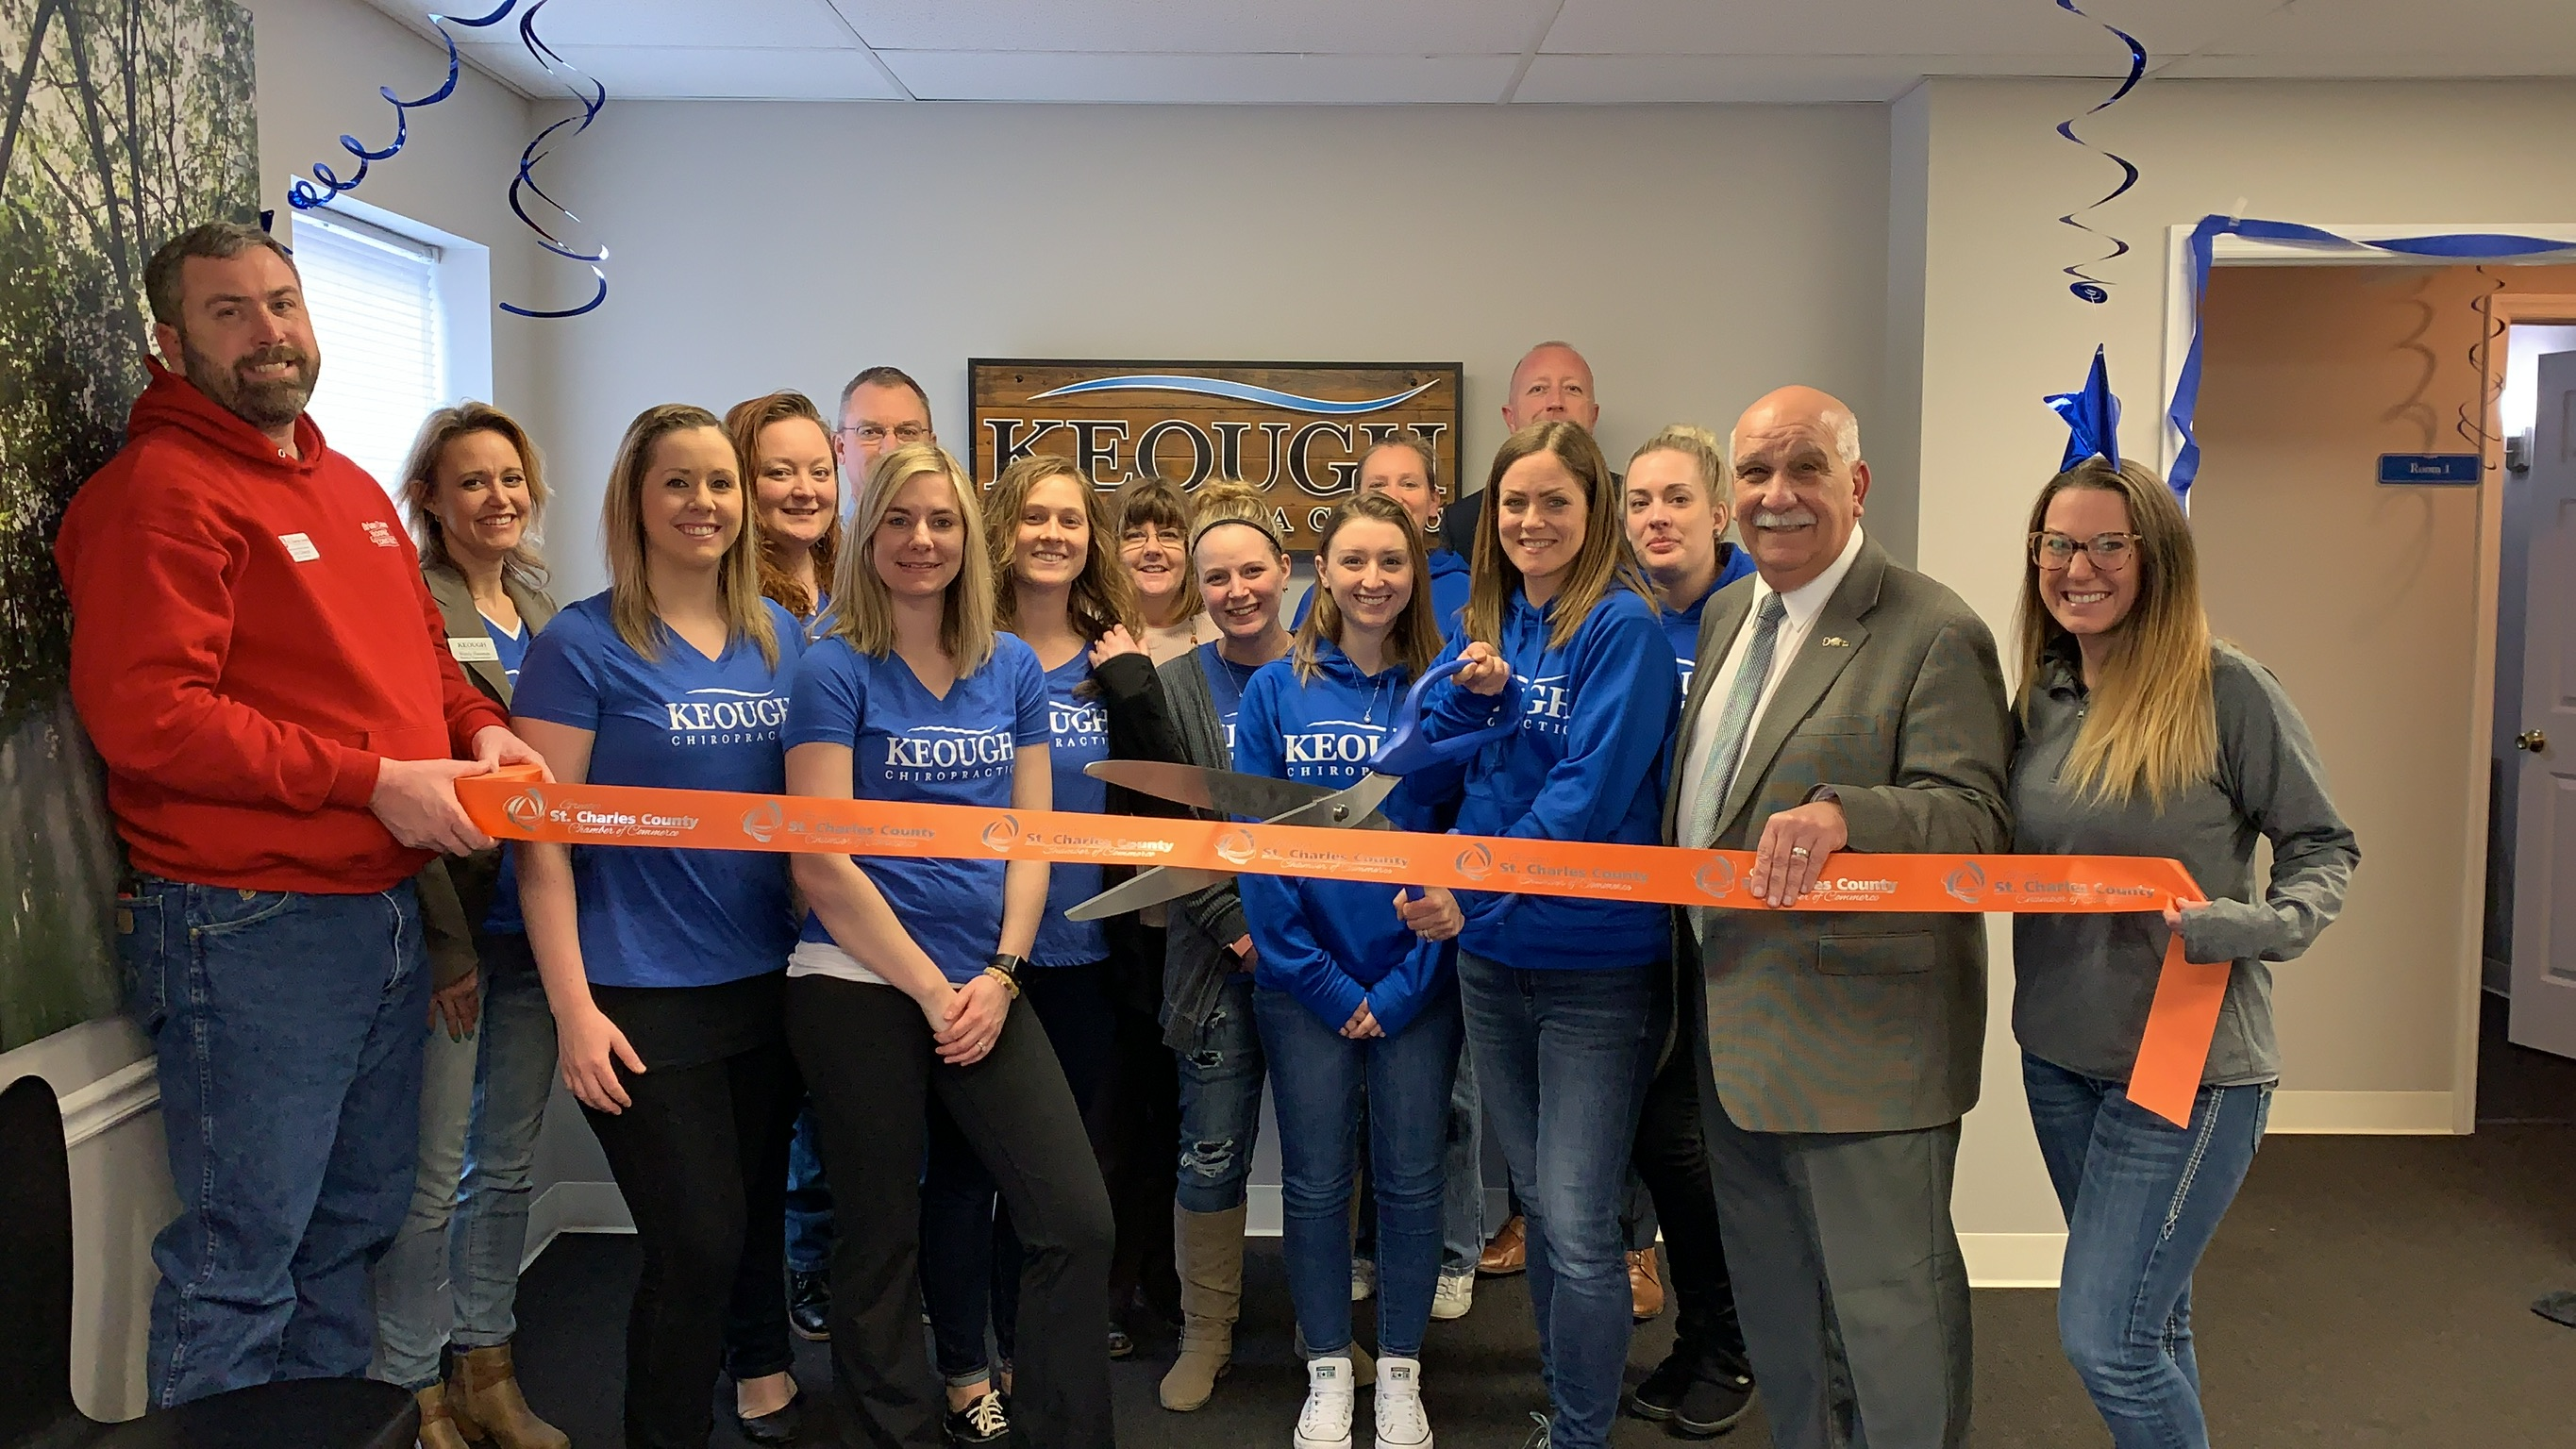 Keough Chiropractic Celebrates 10 Year Anniversary With a Ribbon Cutting